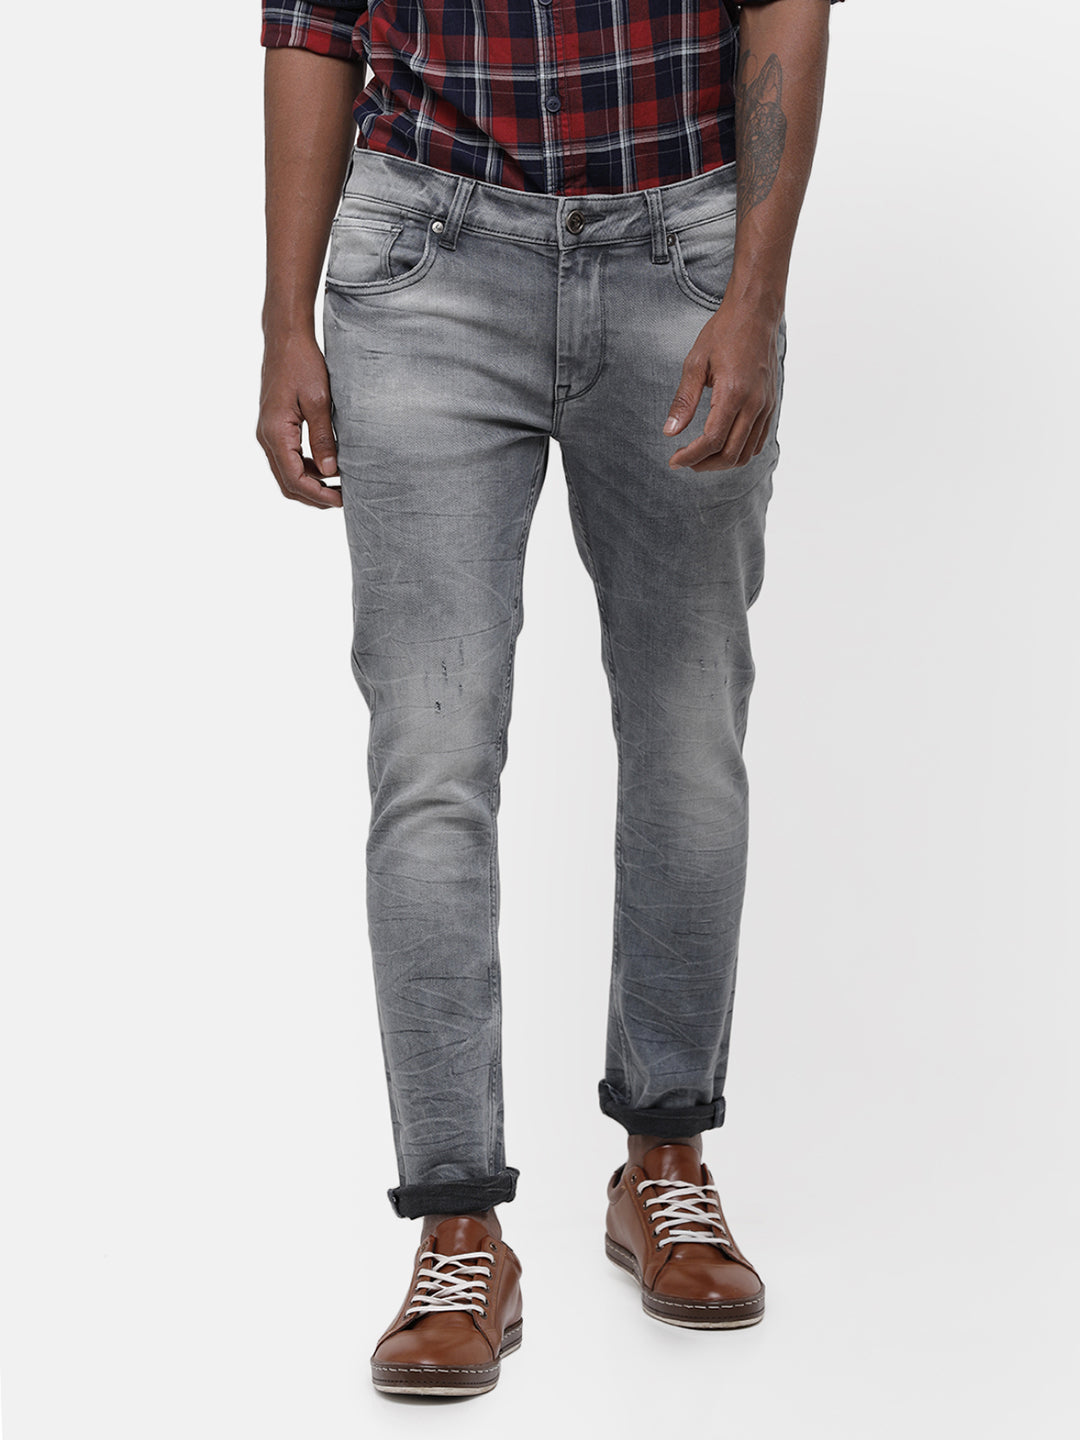 Men's Light gray denim with fade